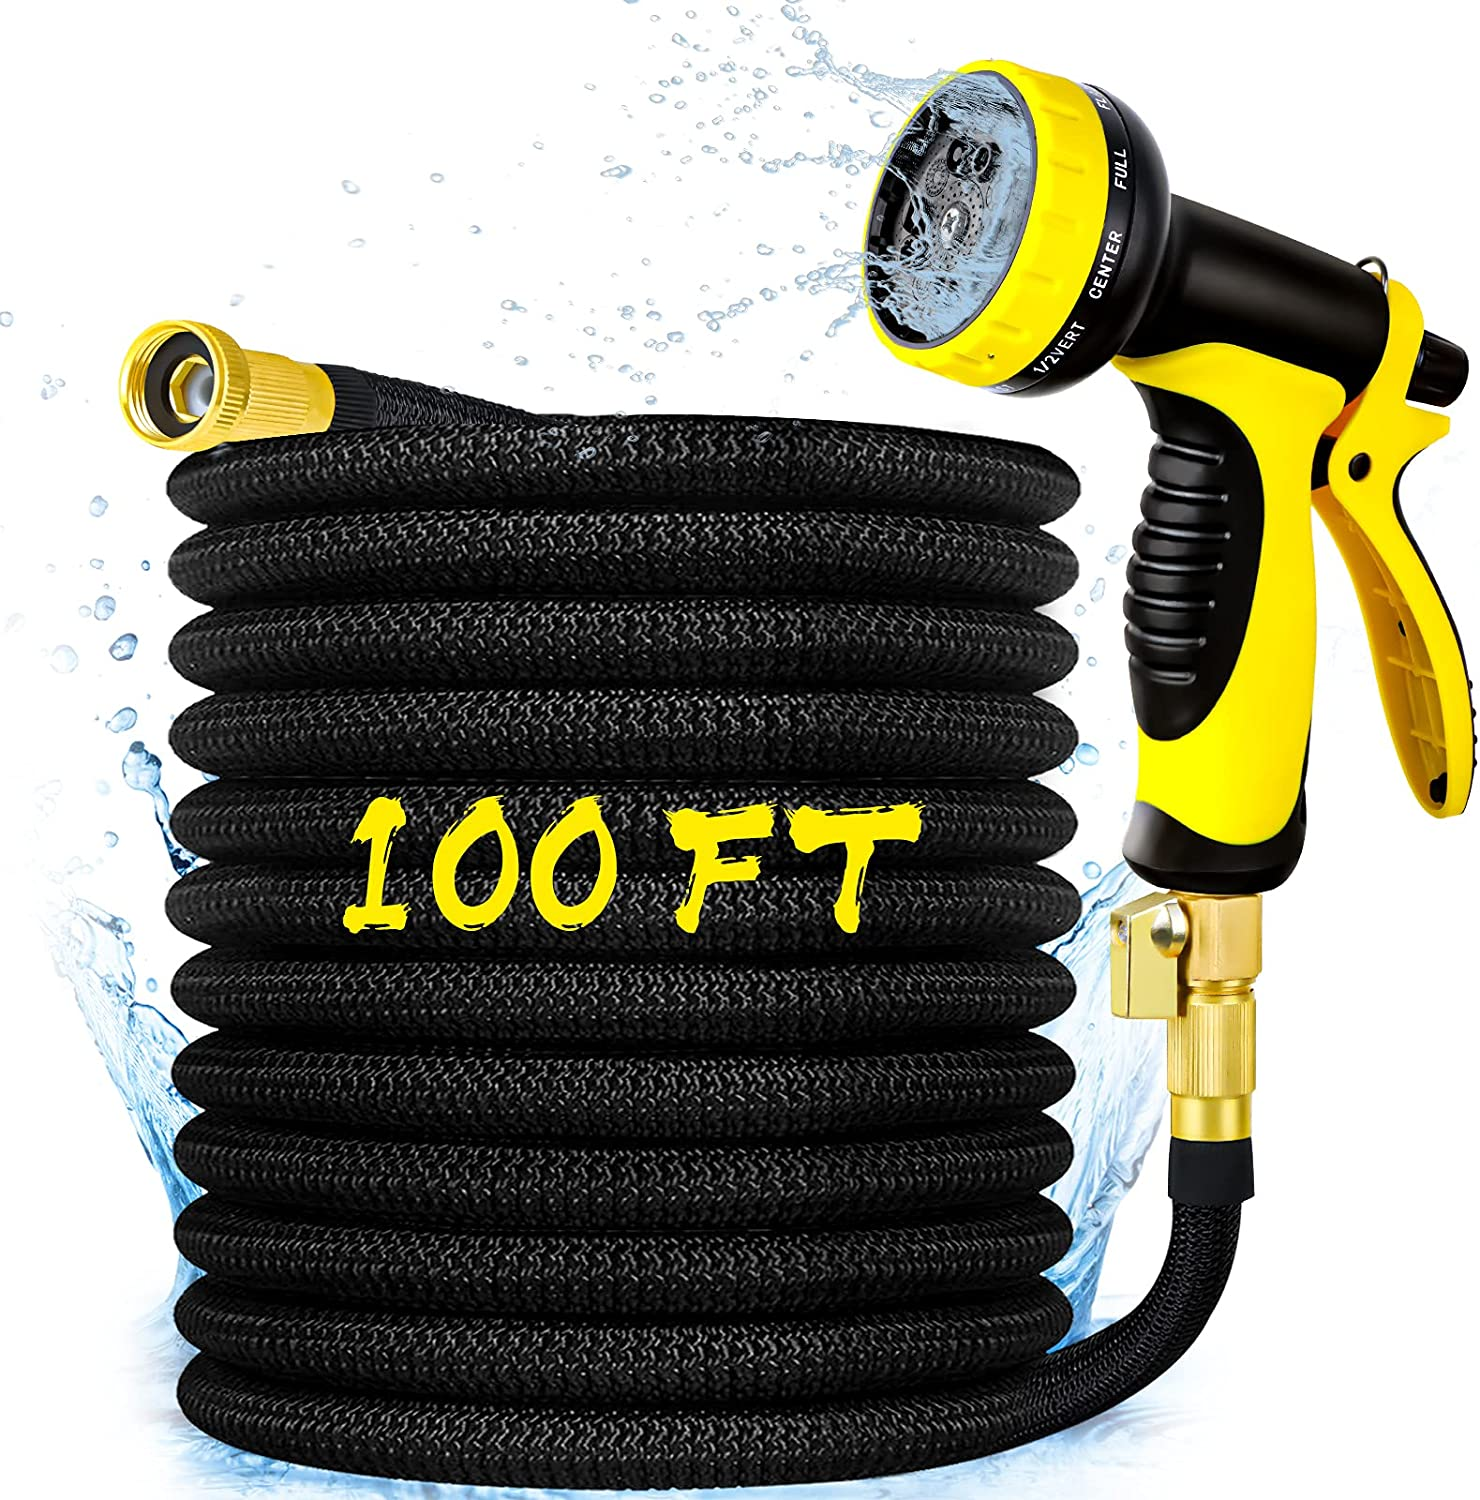 Garden Hose 100 FT, Smartland Expandable Water Hose, Expanding with 10 Function Nozzle, Durable 4 Layers Latex, Solid Brass Fittings, Extra Strength Fabric, Lightweight Yard Hose for Watering